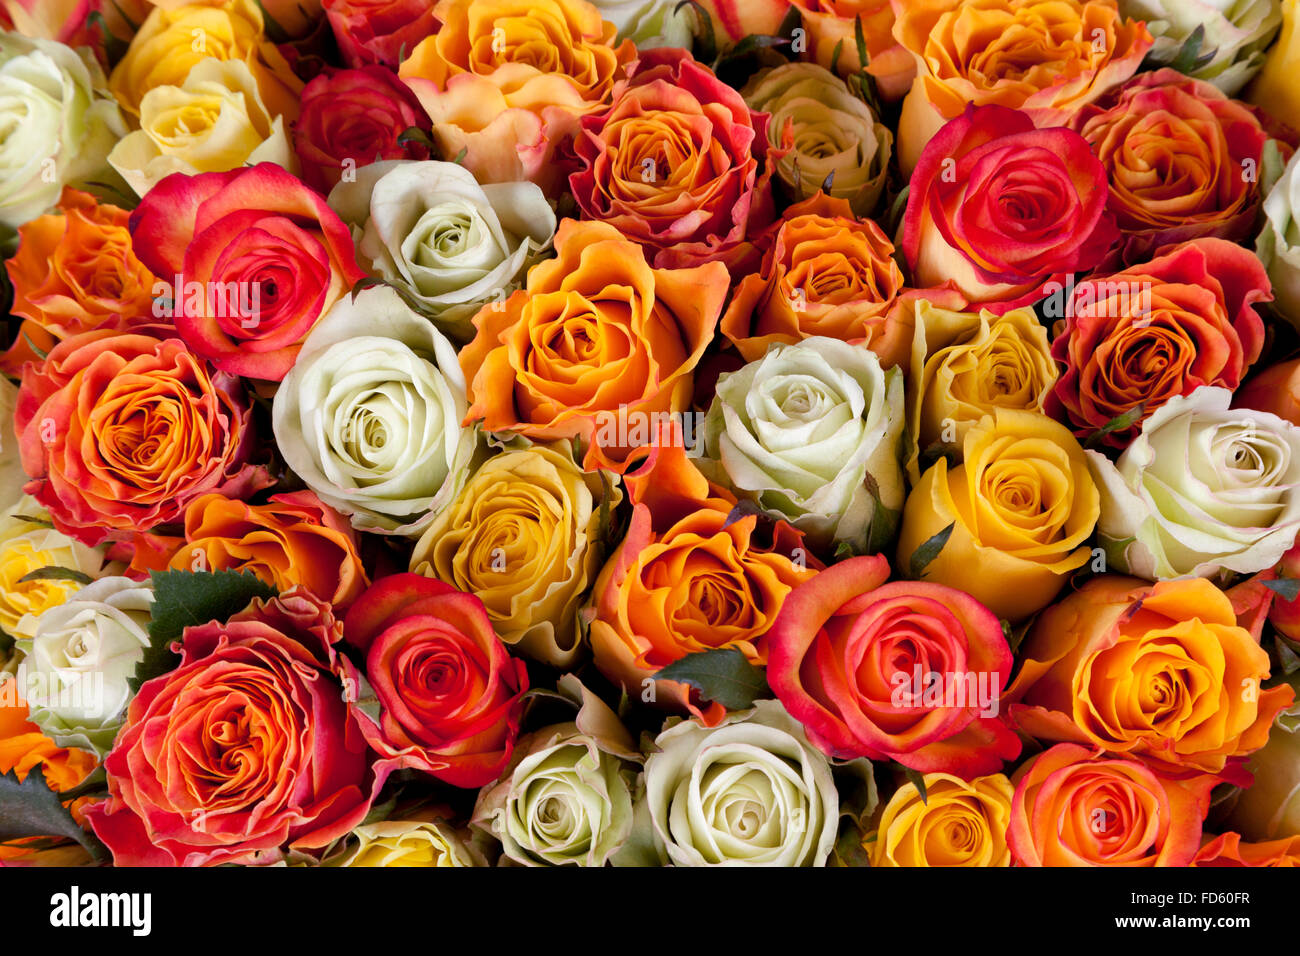 White, yellow and pink roses full frame - Stock Image